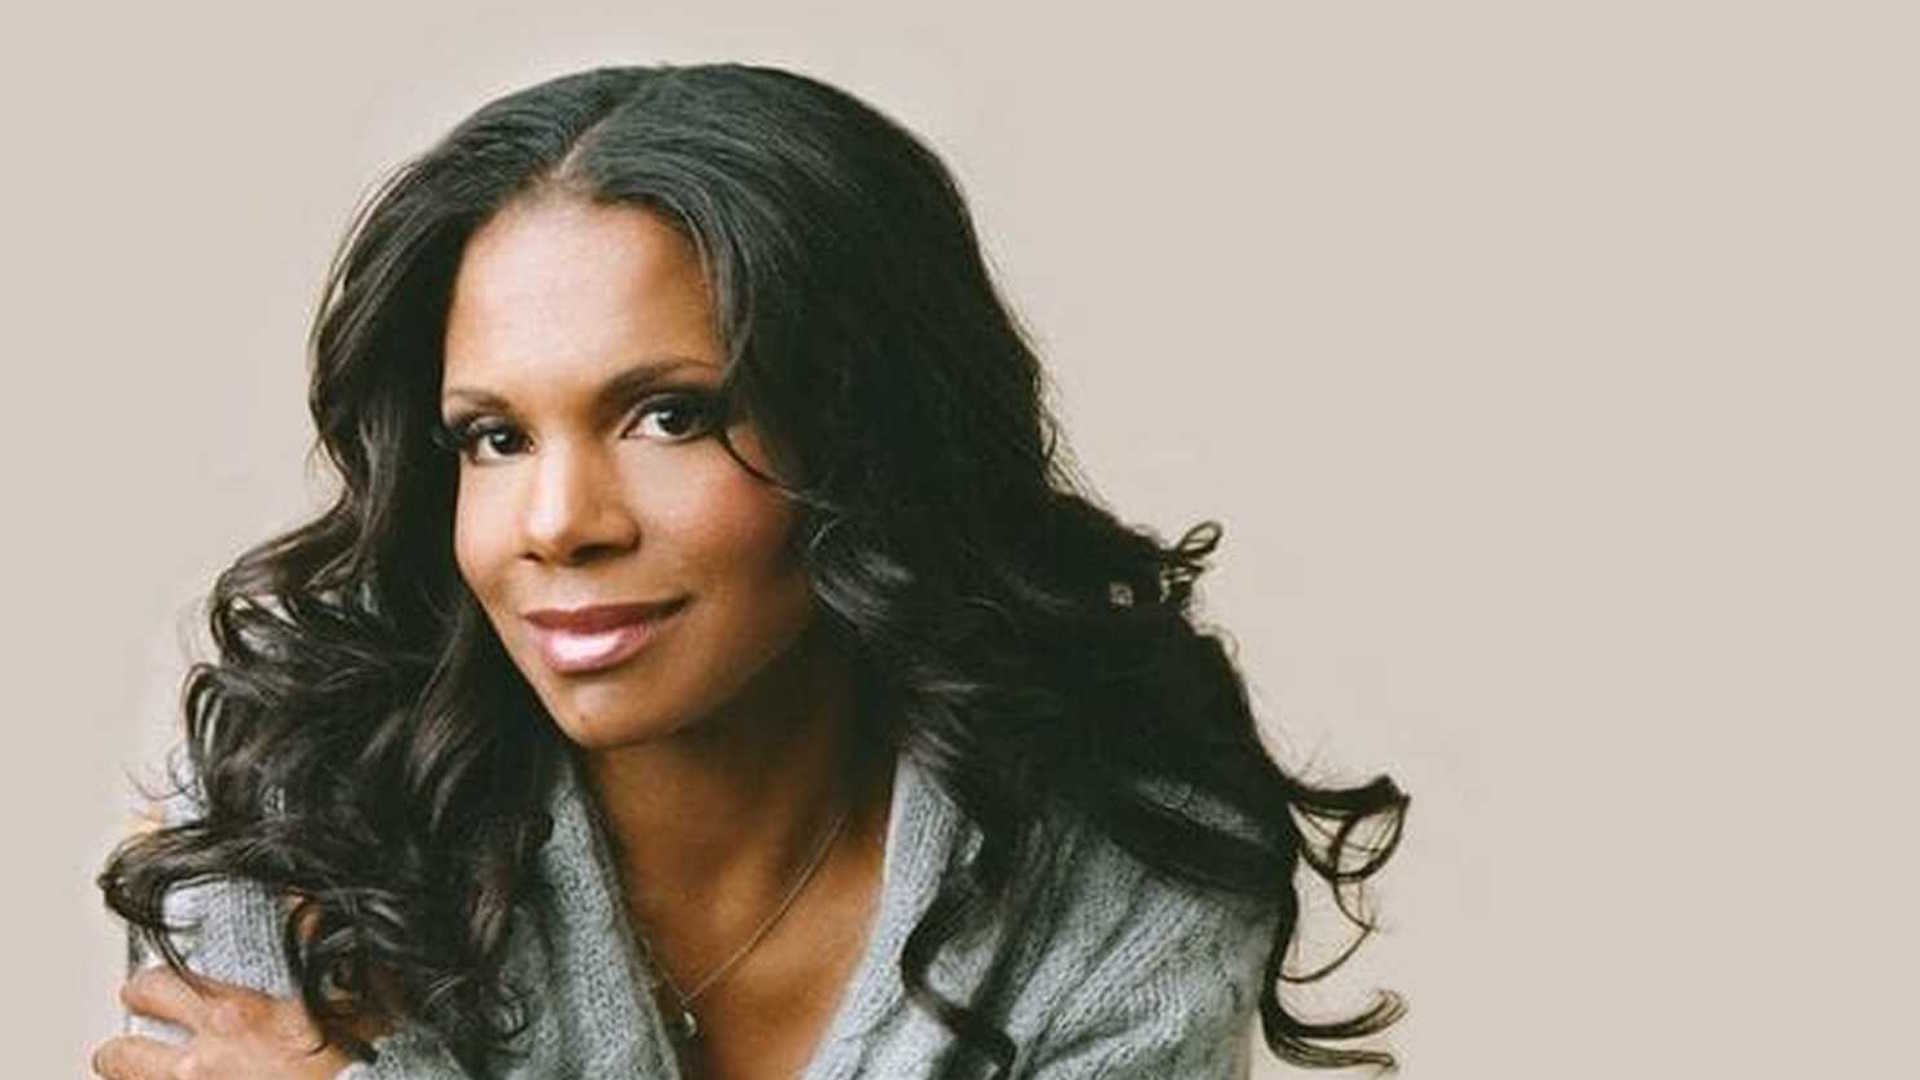 Audra McDonald from The Good Fight